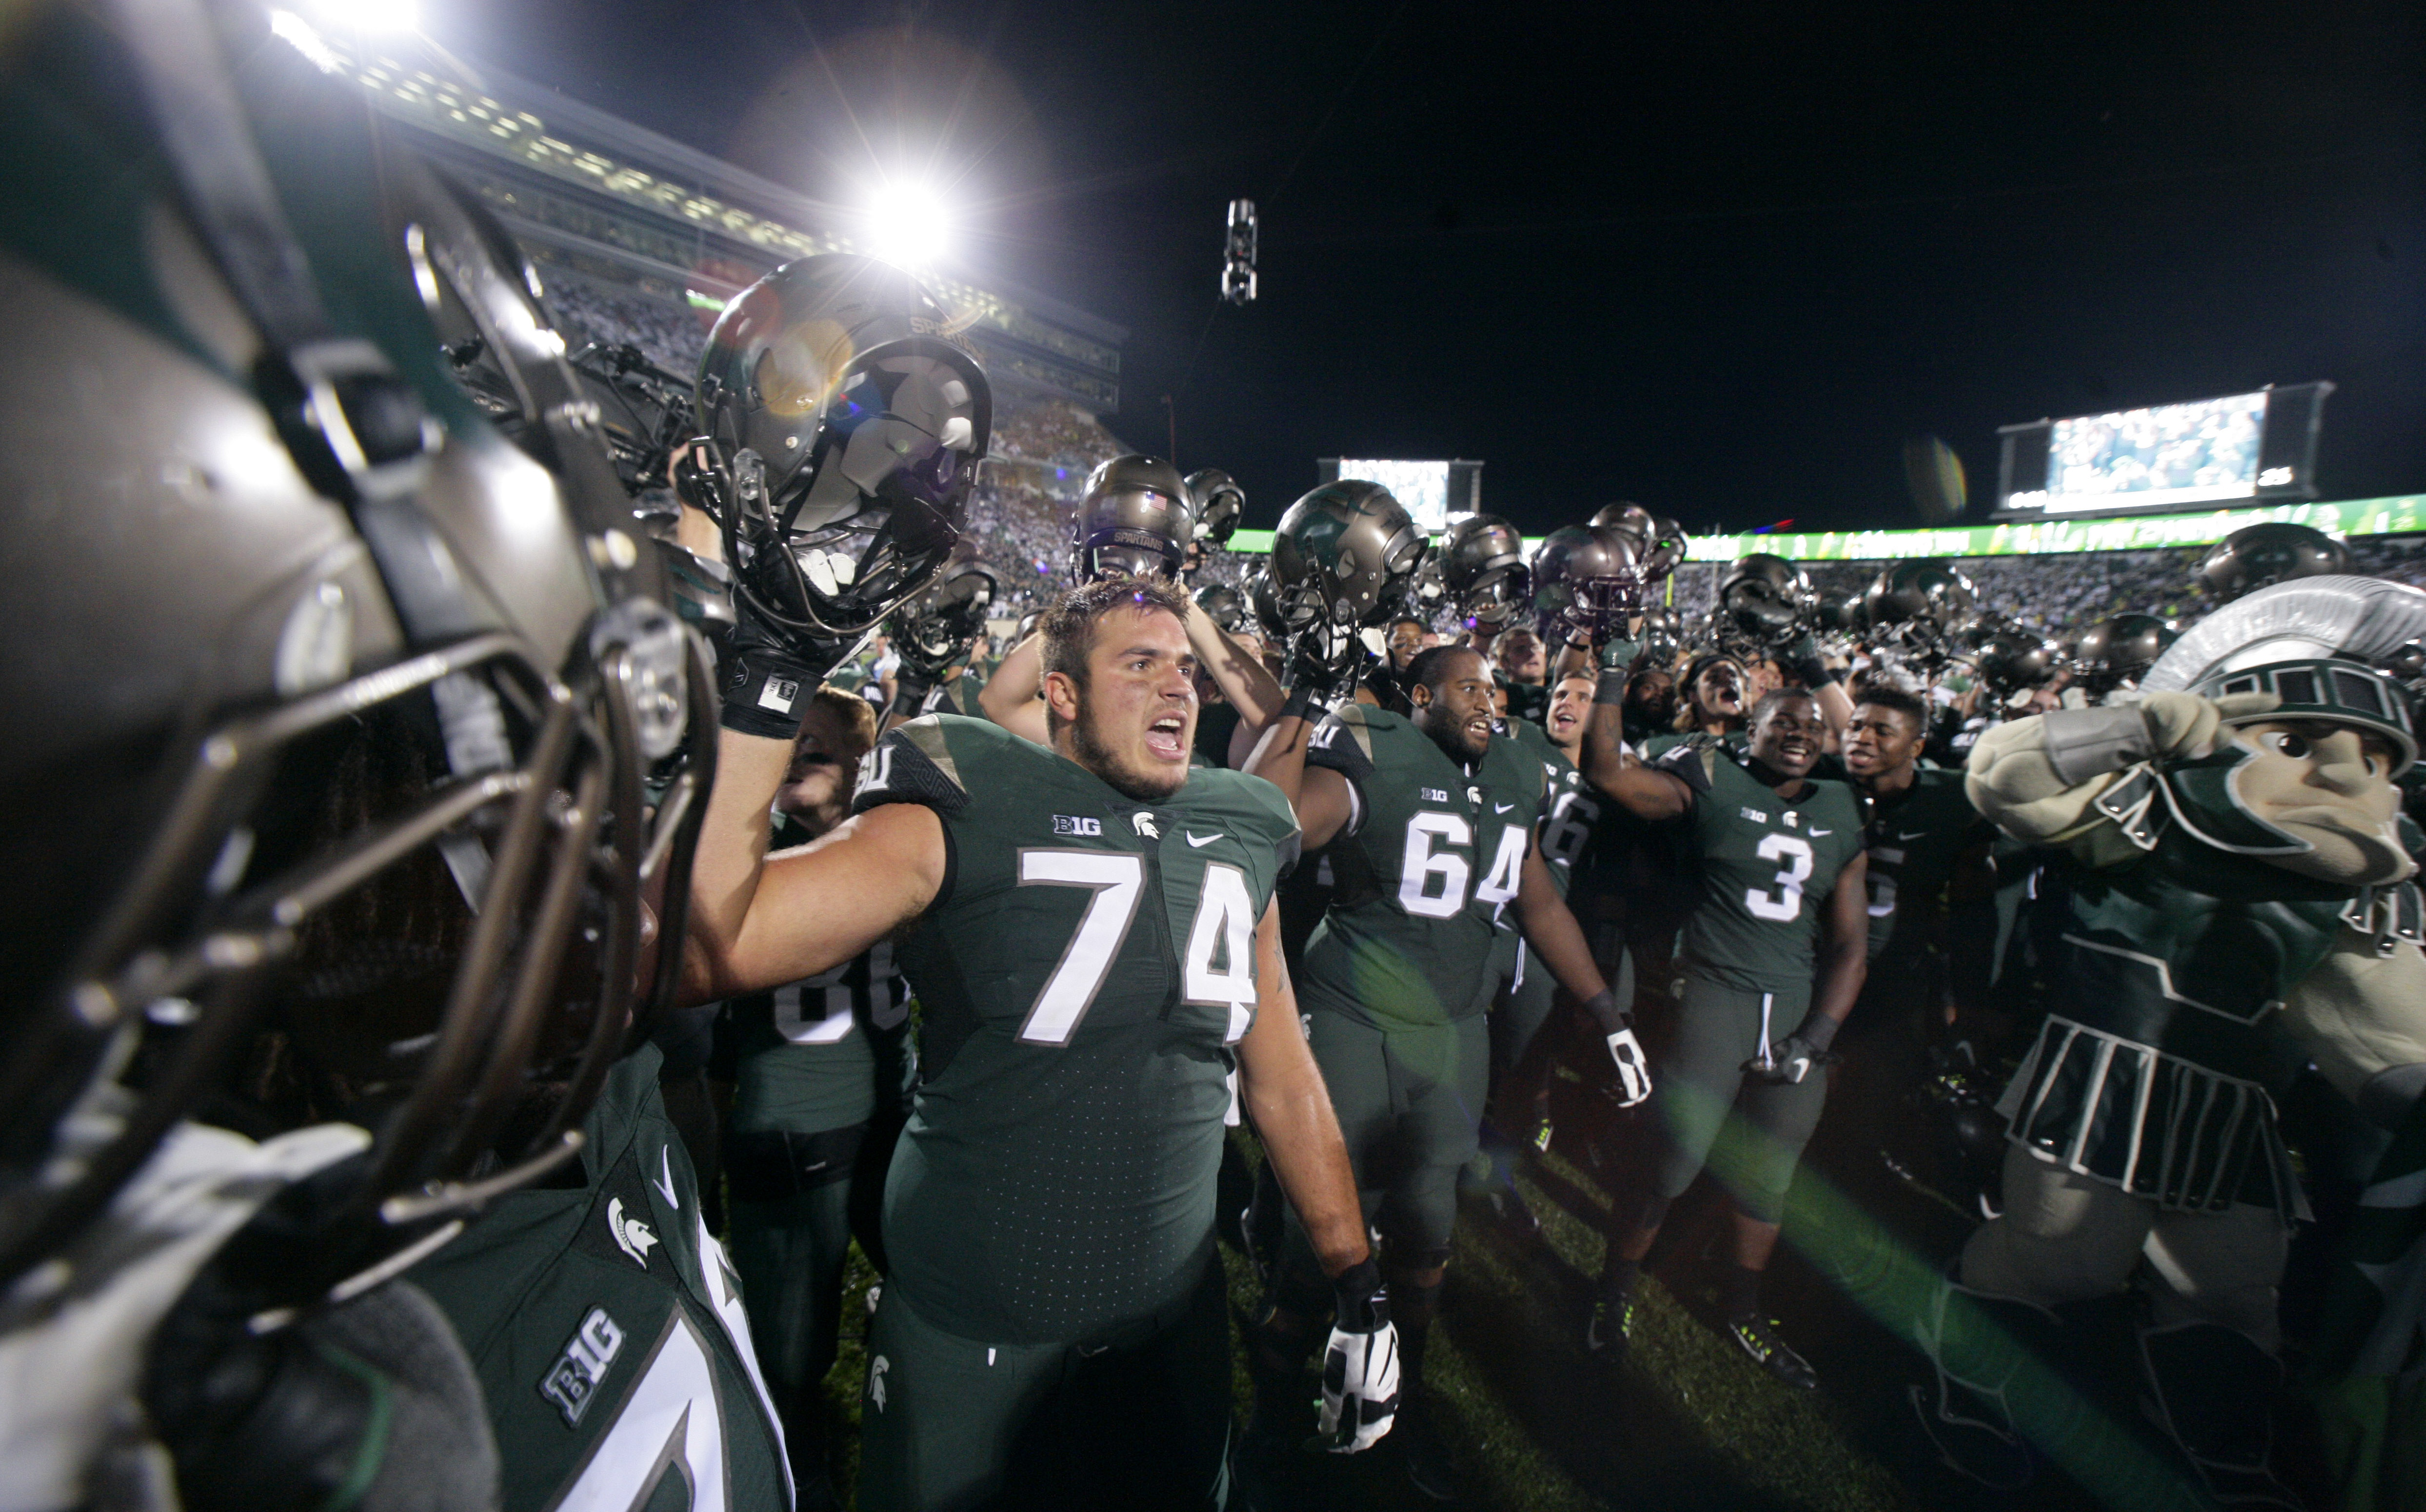 Michigan State players, including Jack Conklin (74), Brandon Clemons (64) and L.J. Scott (3), celebrate following a 31-28 win over Oregon in an NCAA college football game, Saturday, Sept. 12, 2015, in East Lansing, Mich. (AP Photo/Al Goldis)